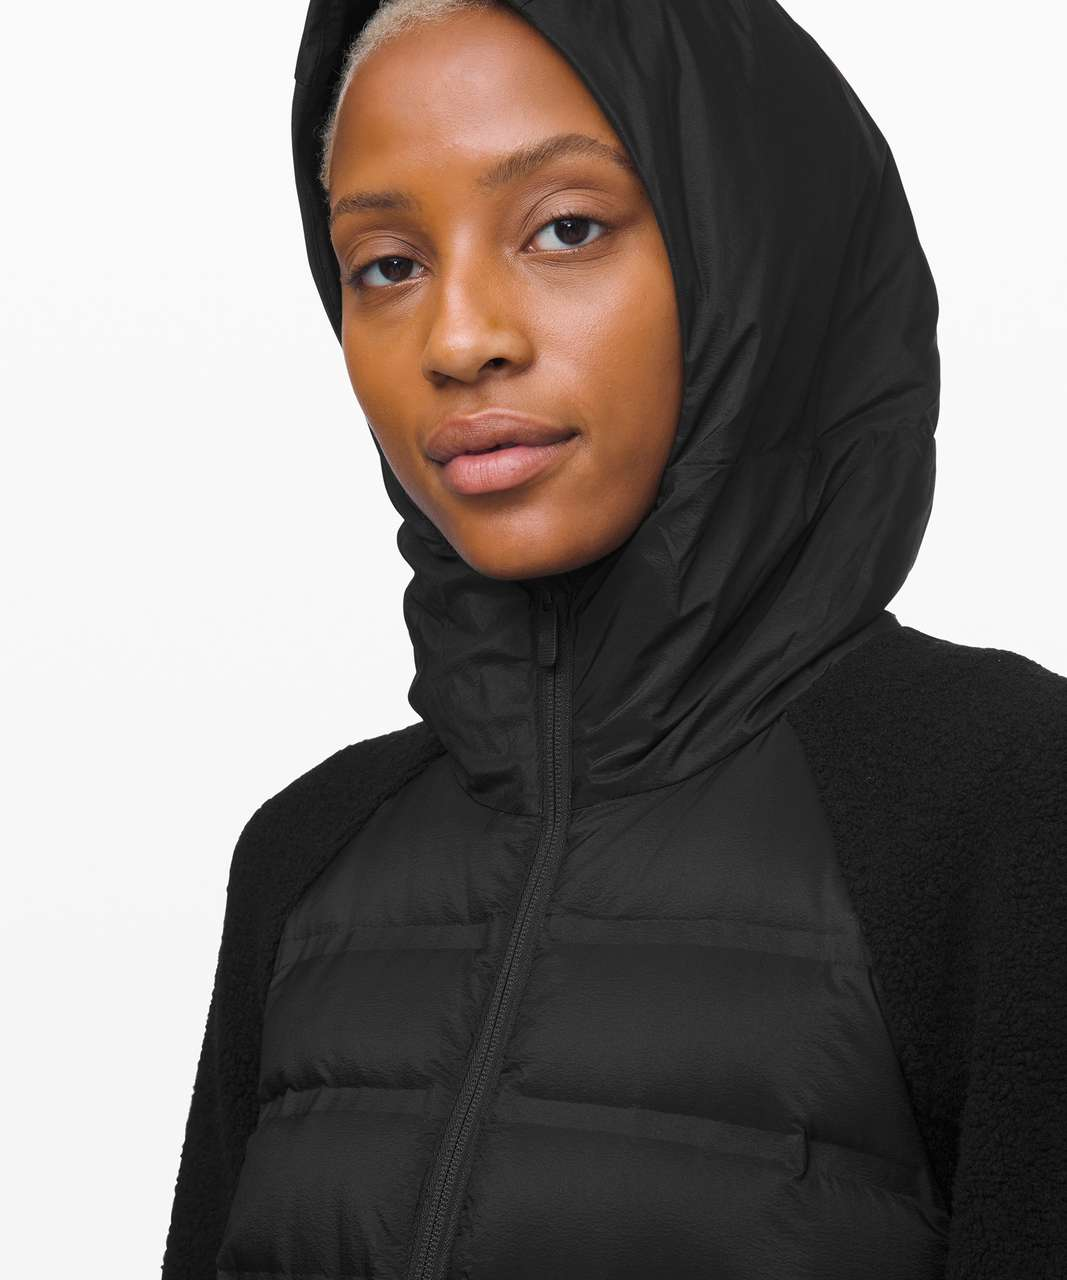 Lululemon Go Cozy Insulated Jacket - Black / Black